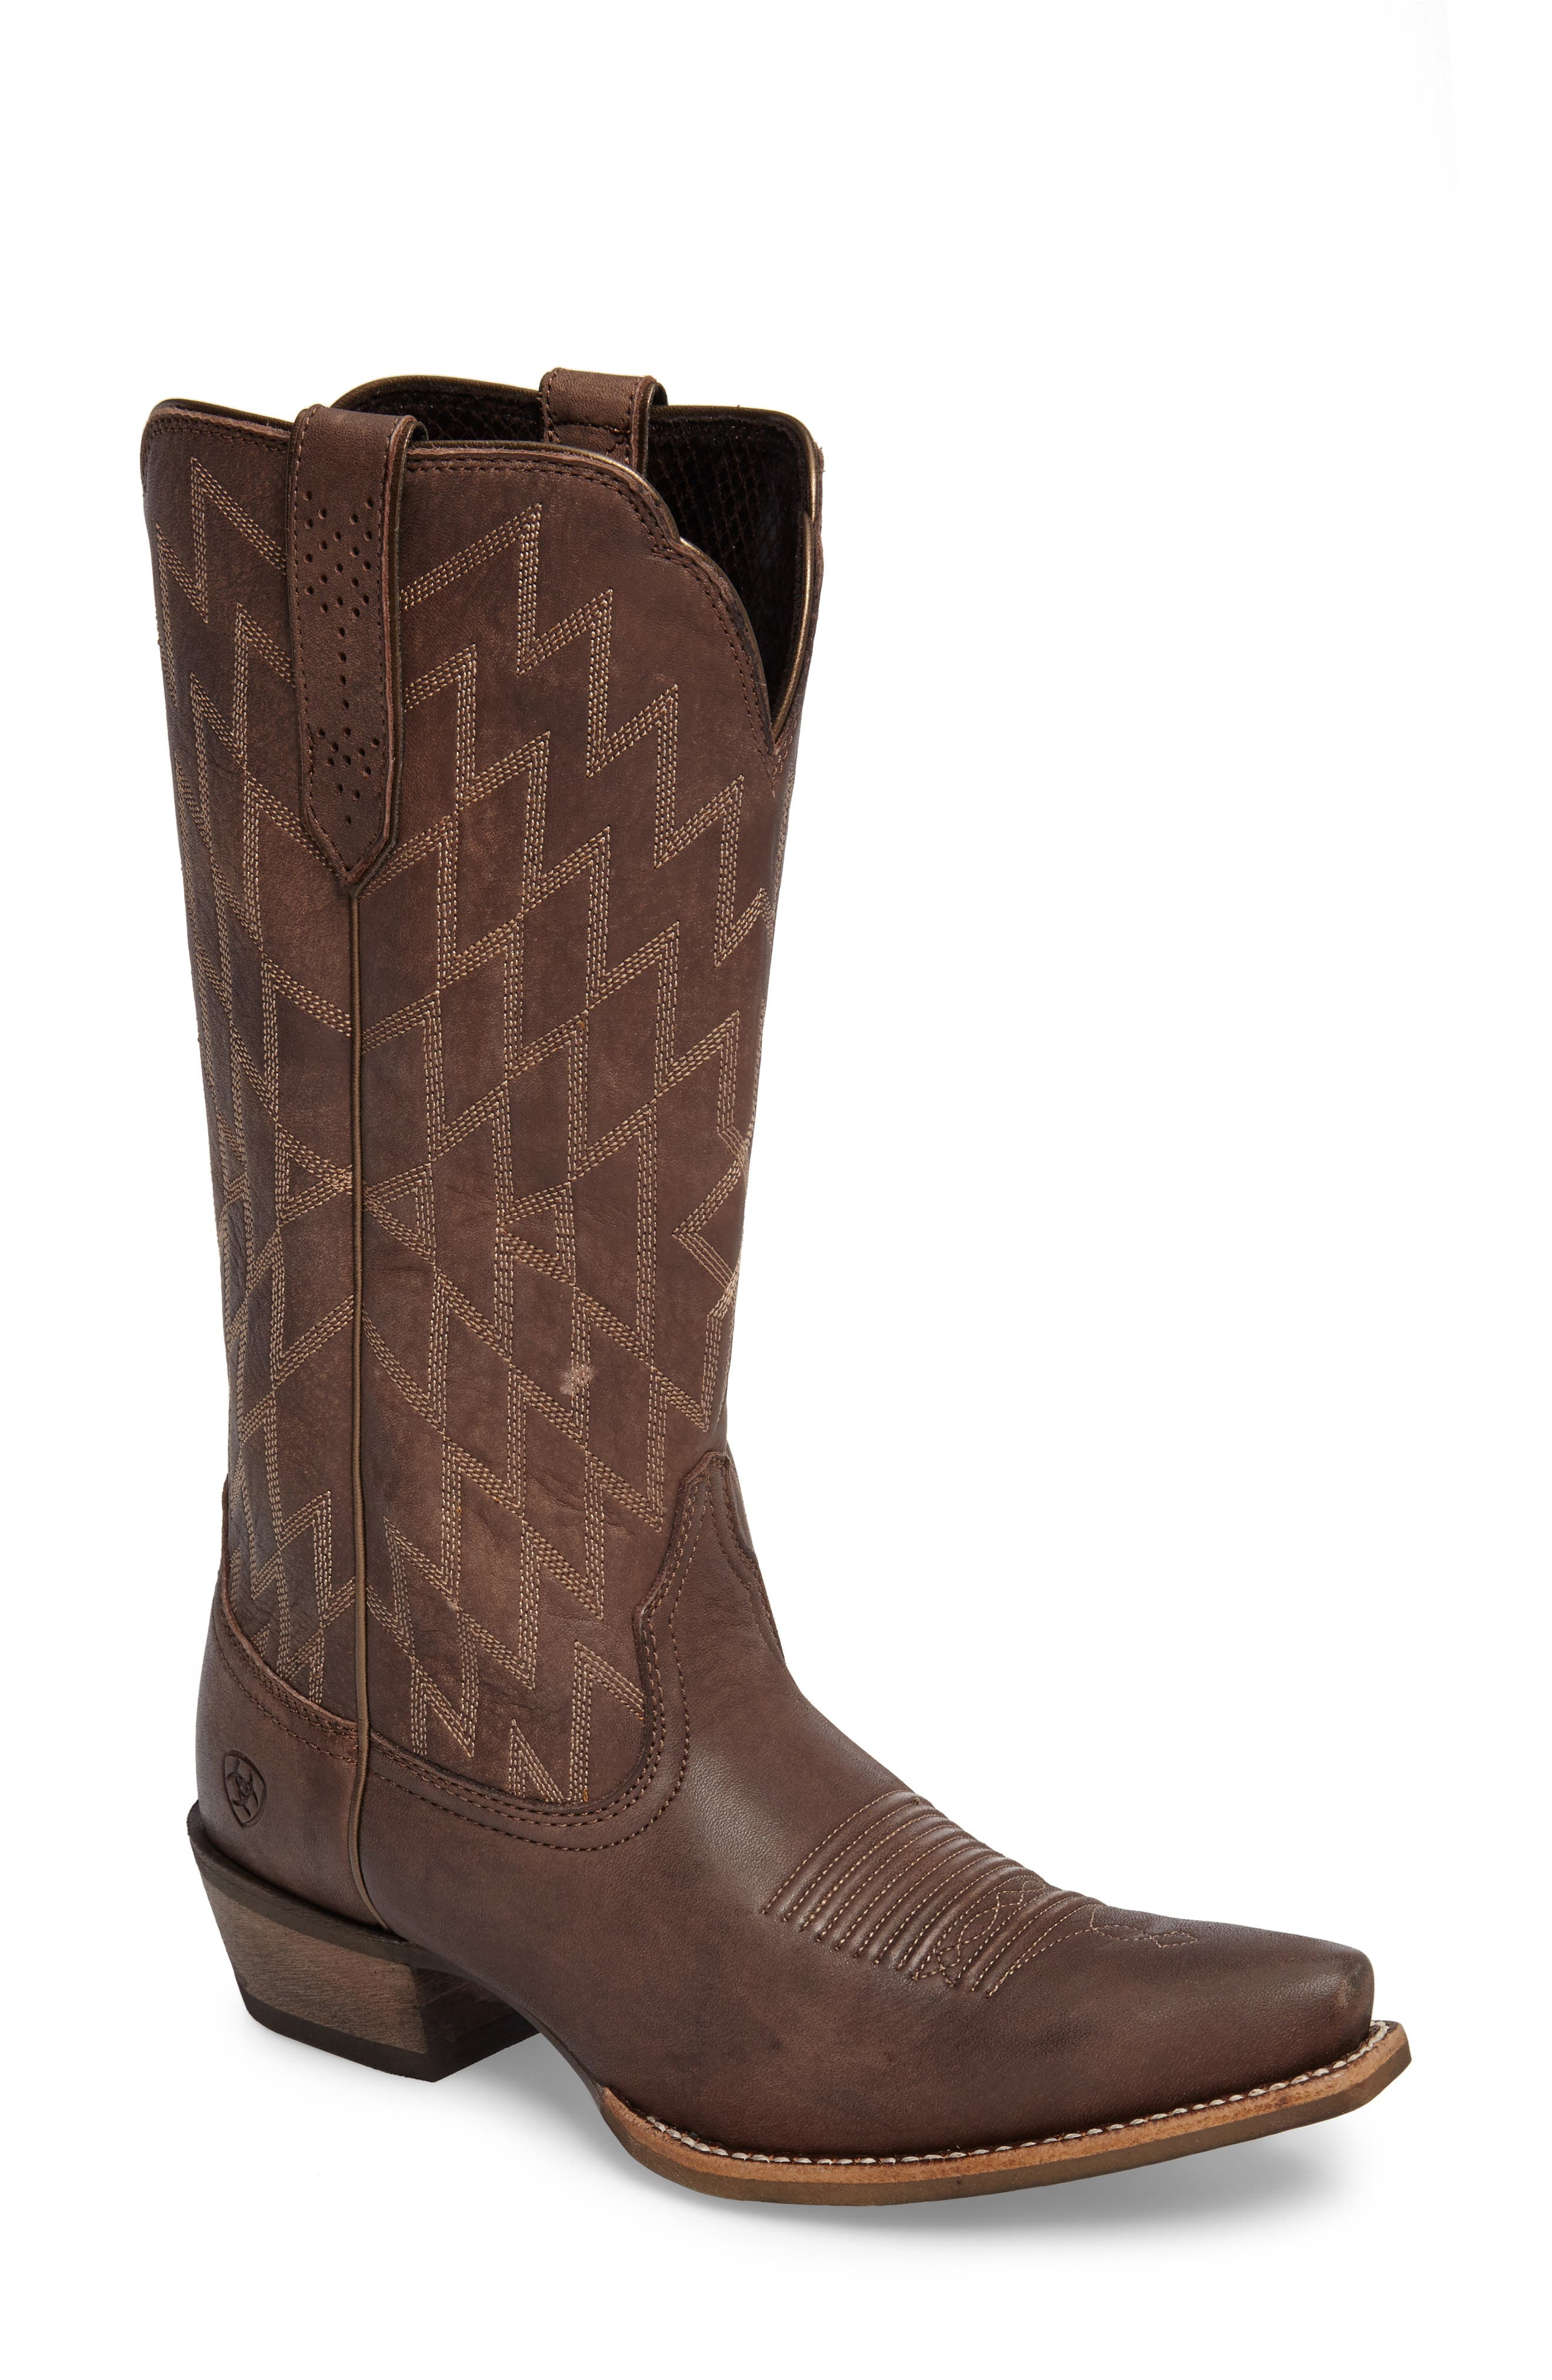 Alternate Image 1 Selected - Ariat Heritage Southwestern X-Toe Boot (Women)